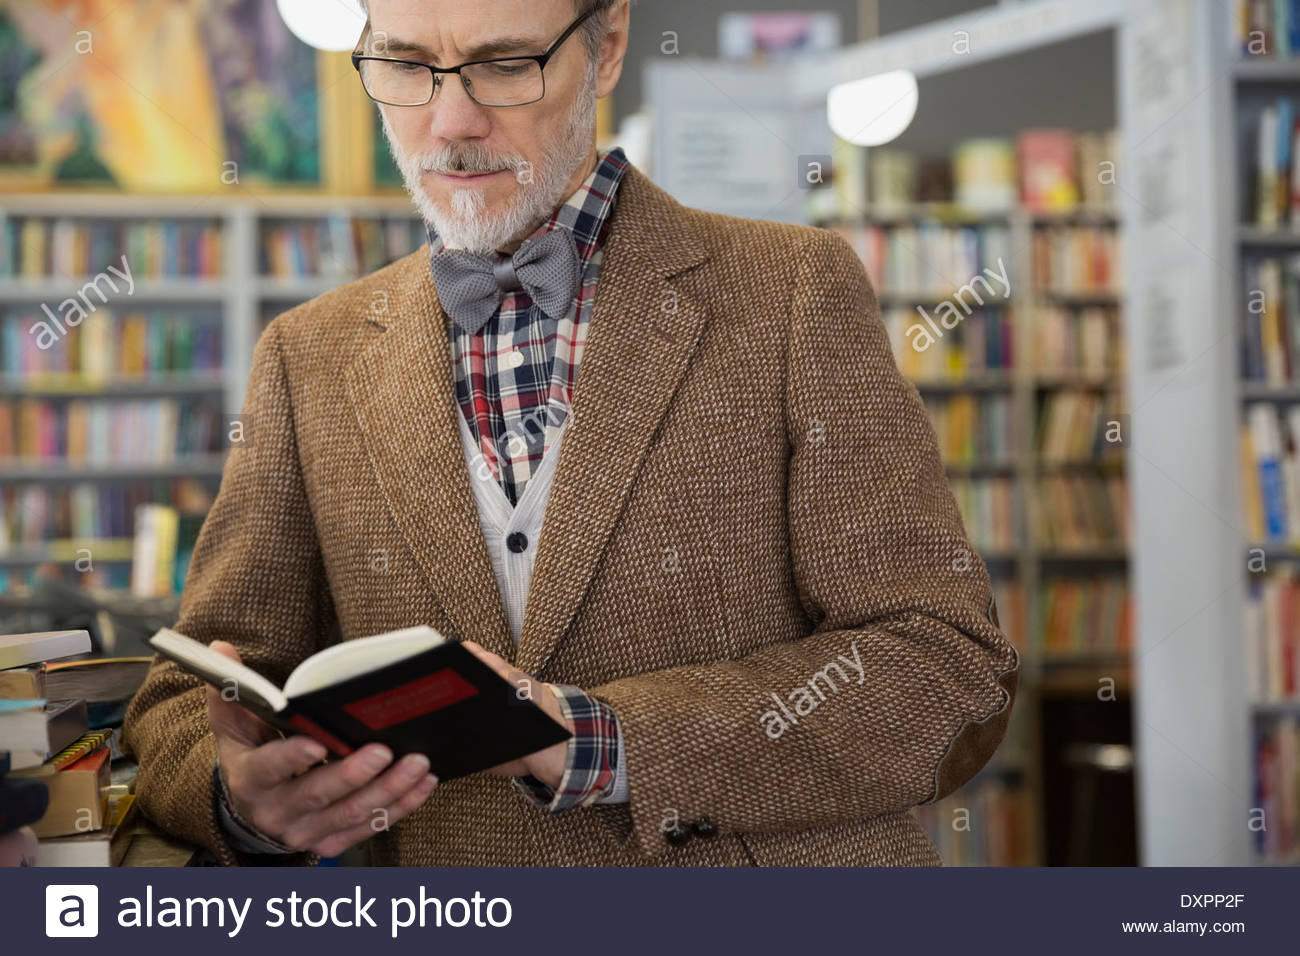 Man in bowtie reading book in bookstore - Stock Image